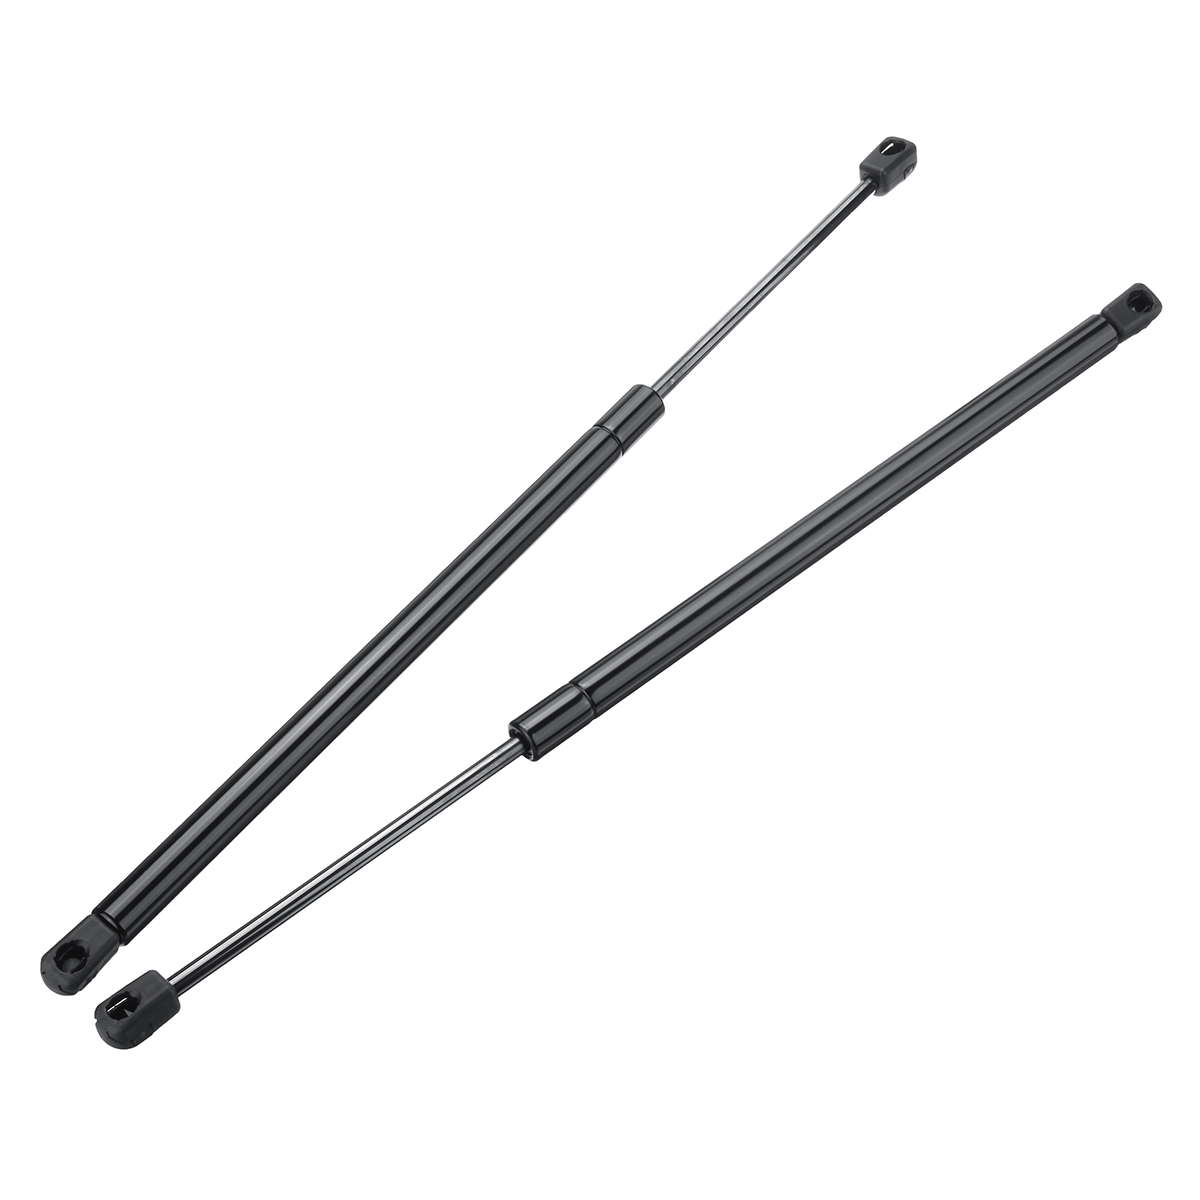 2Pcs Car Rear Upper Tailgate Boot Gas Struts Support For